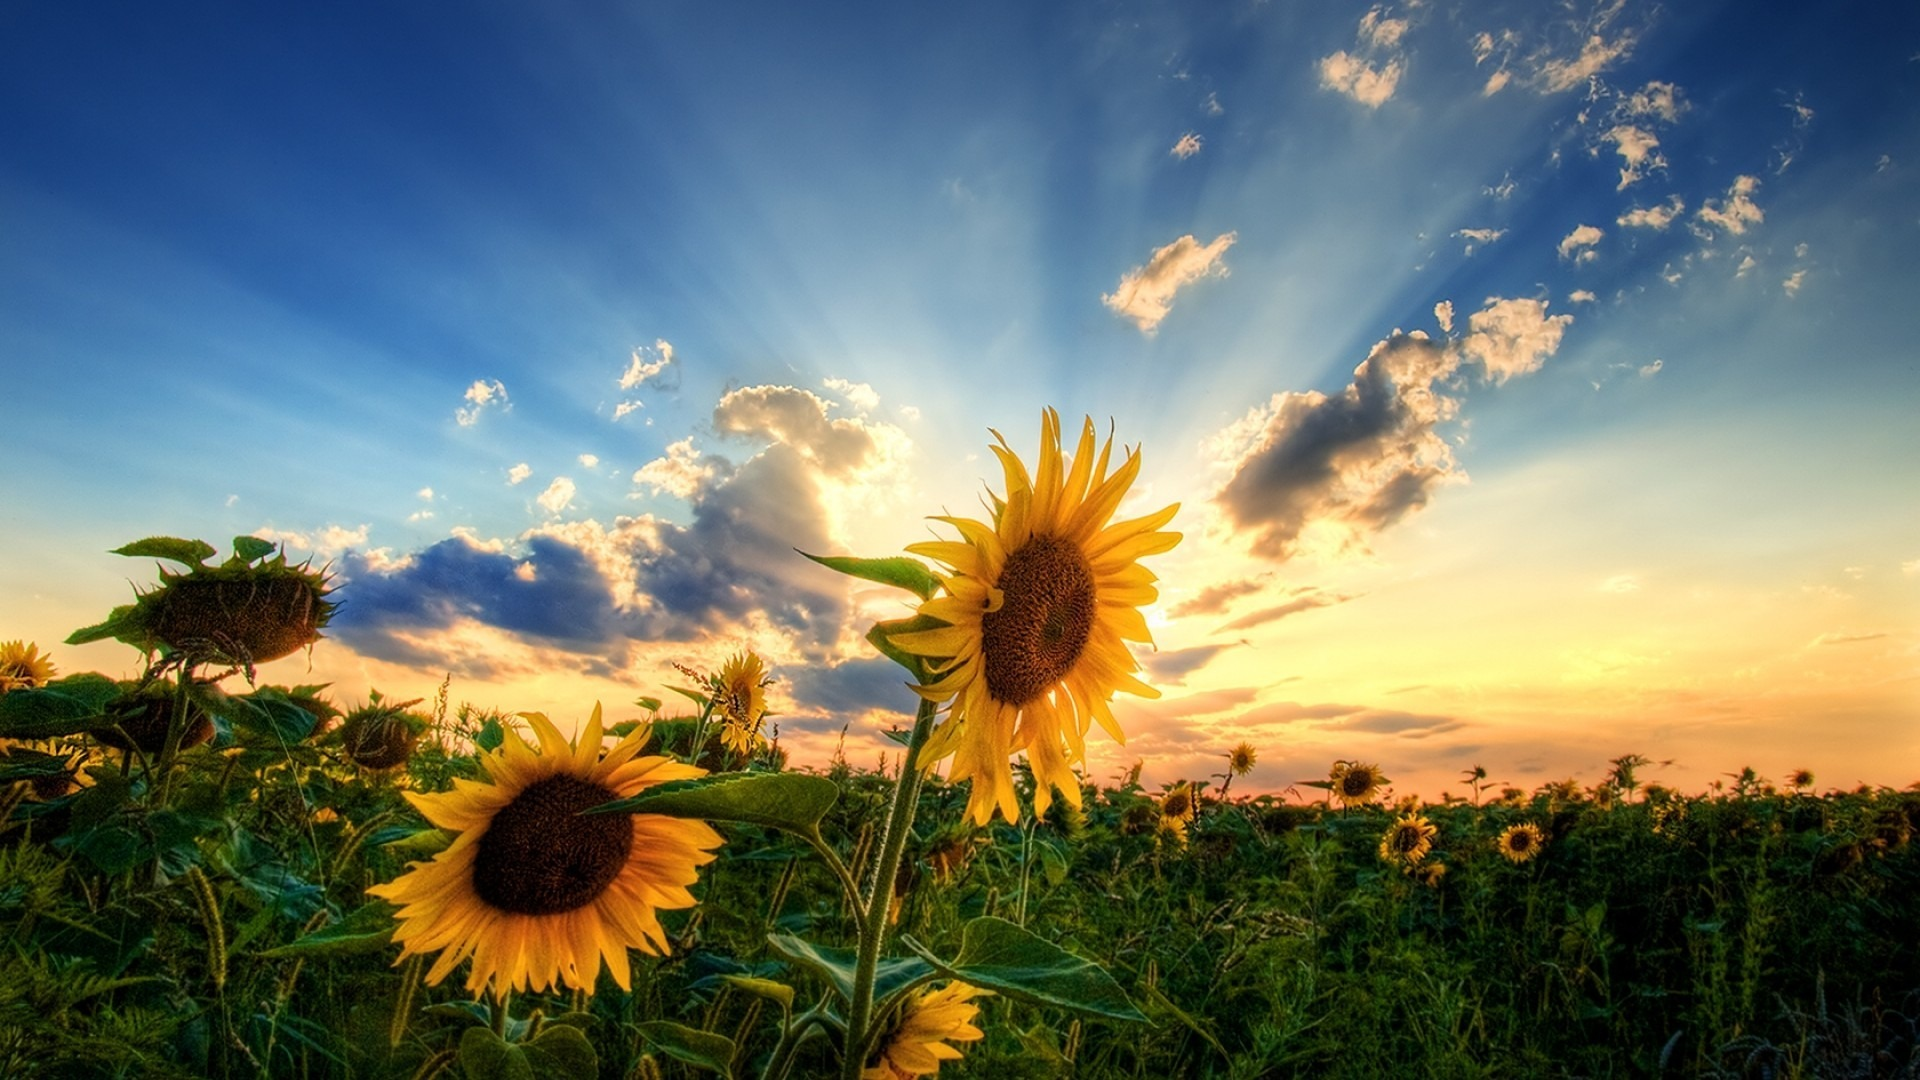 Sunflowers Field Hd Wallpaper Summer Full Light Download 1920x1080